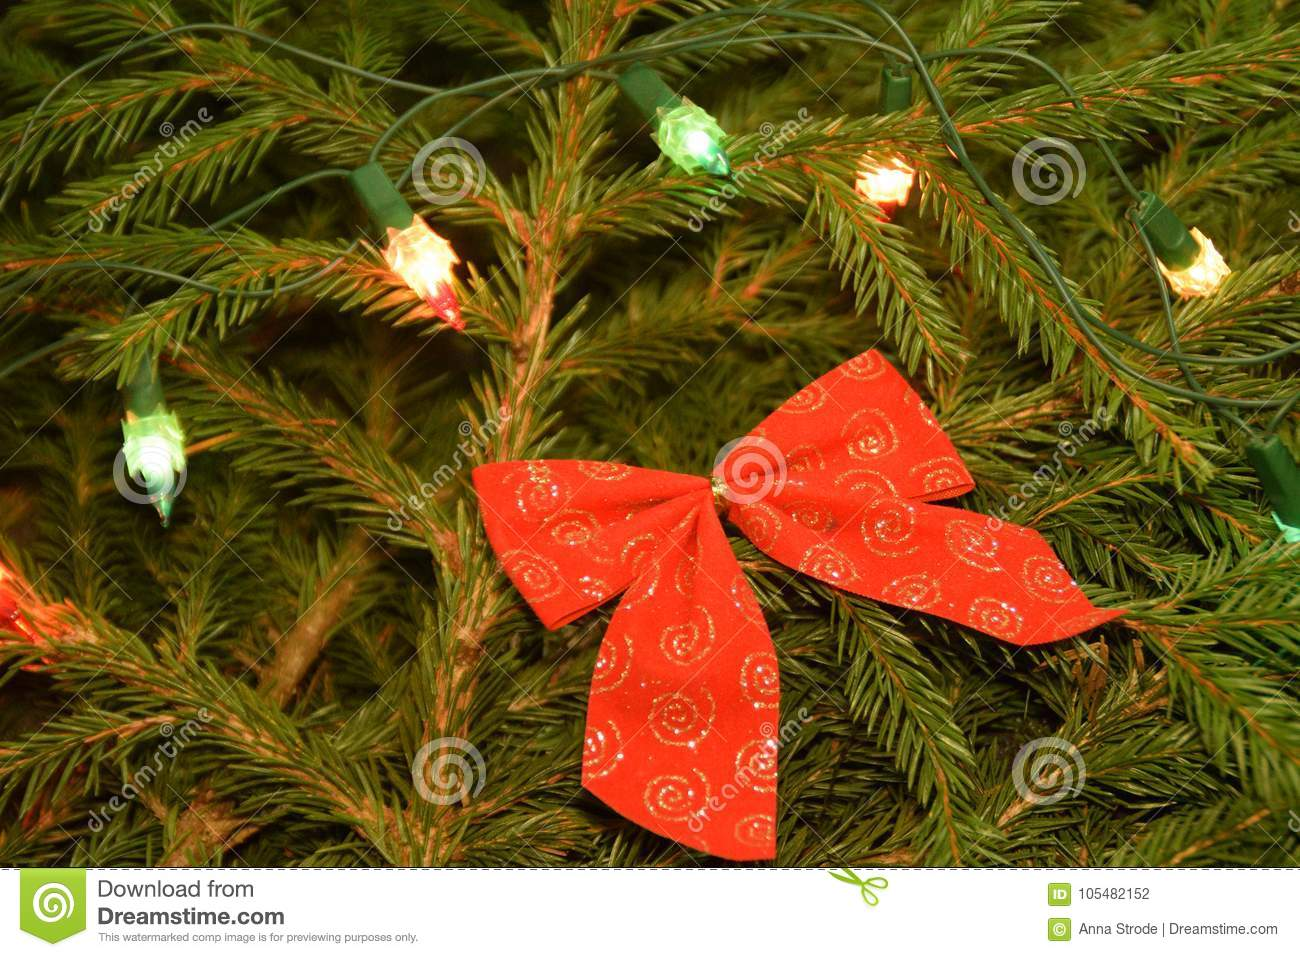 A Different Kind Of Christmas.Christmas Tree Lights And Decorations On Fir Tree Branches